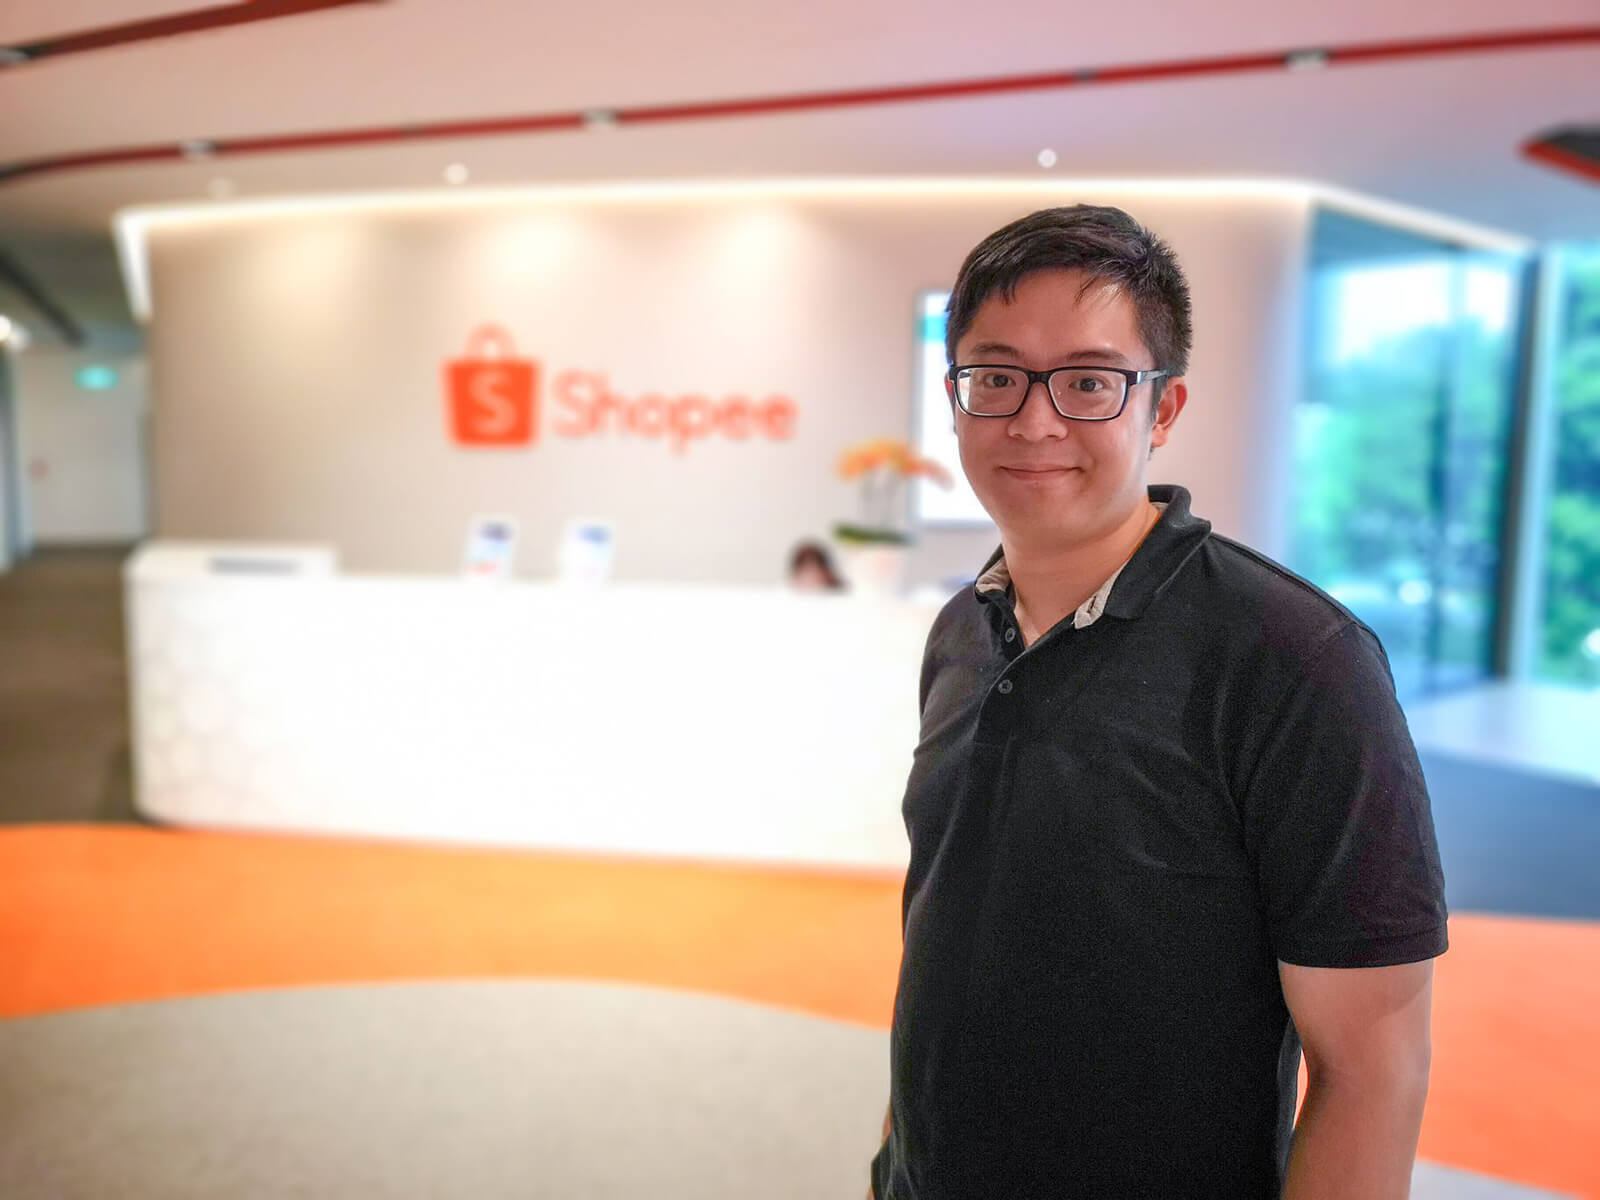 DigiPen (Singapore) alumnus Chester Liew stands in front of a wall adorned with the Shopee logo